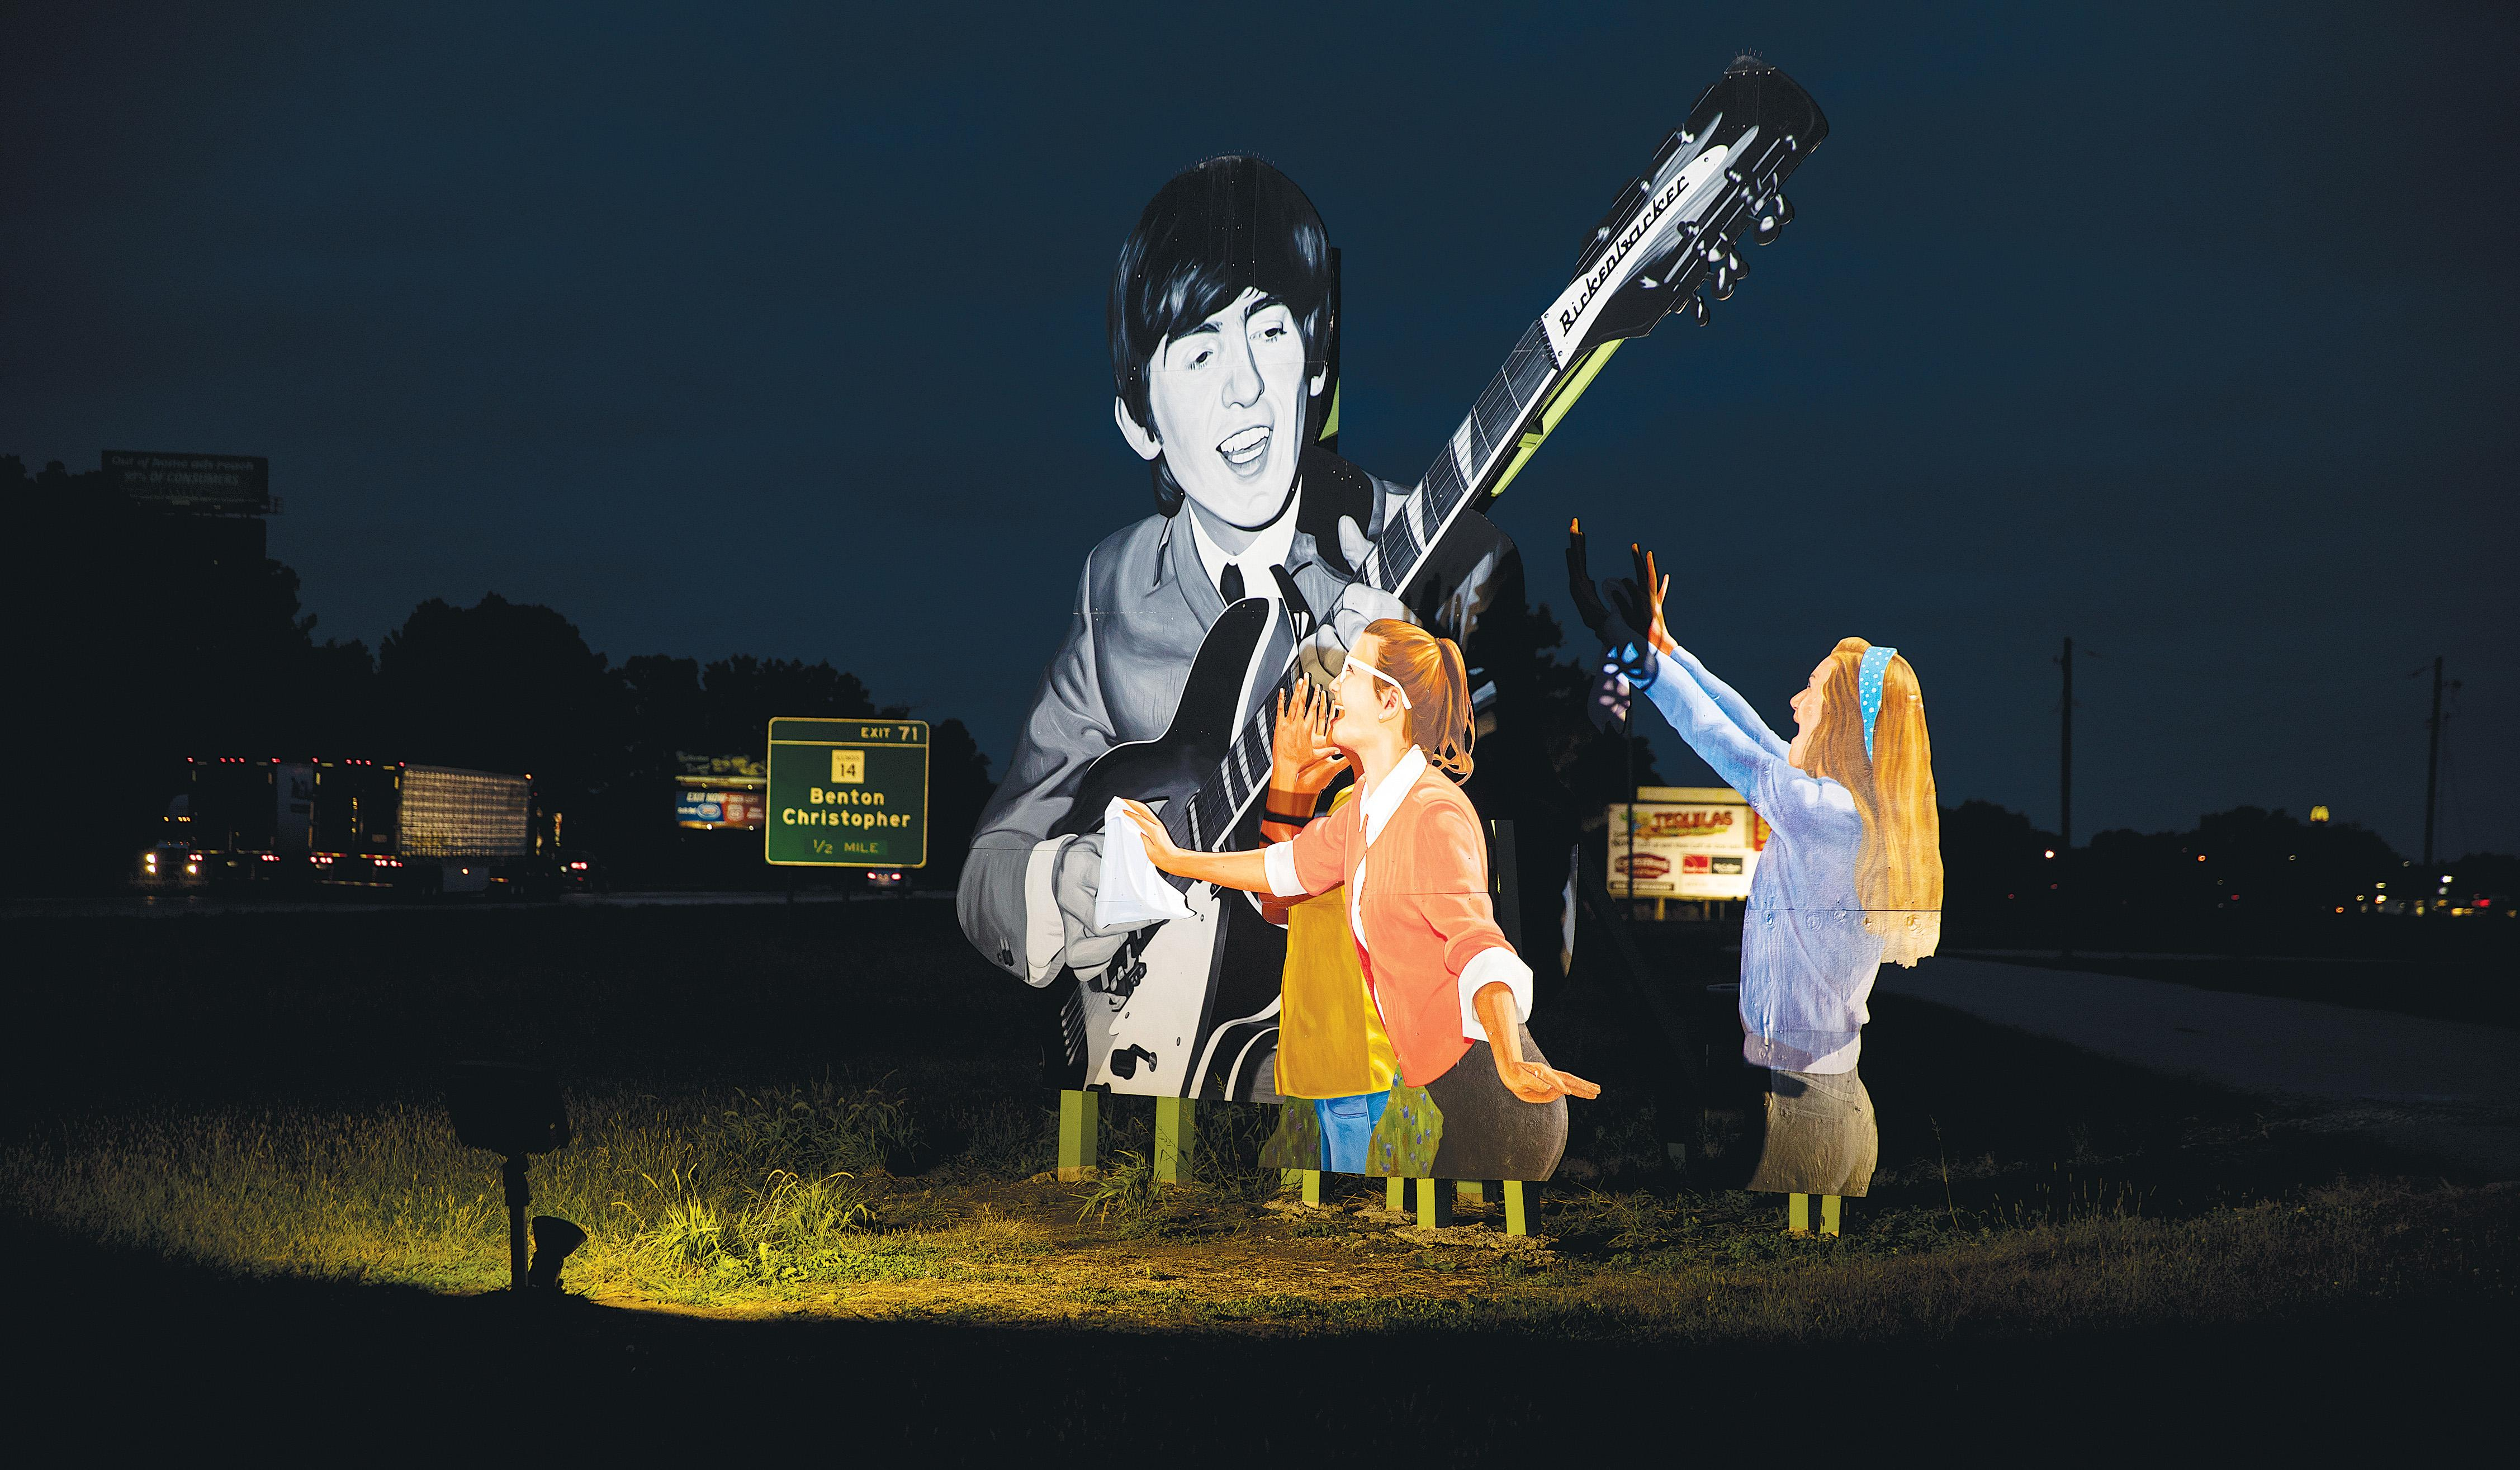 A billboard near Benton, Illinois. The rock 'n' roller from Liverpool was unknown in the States when he visited the town in 1963.